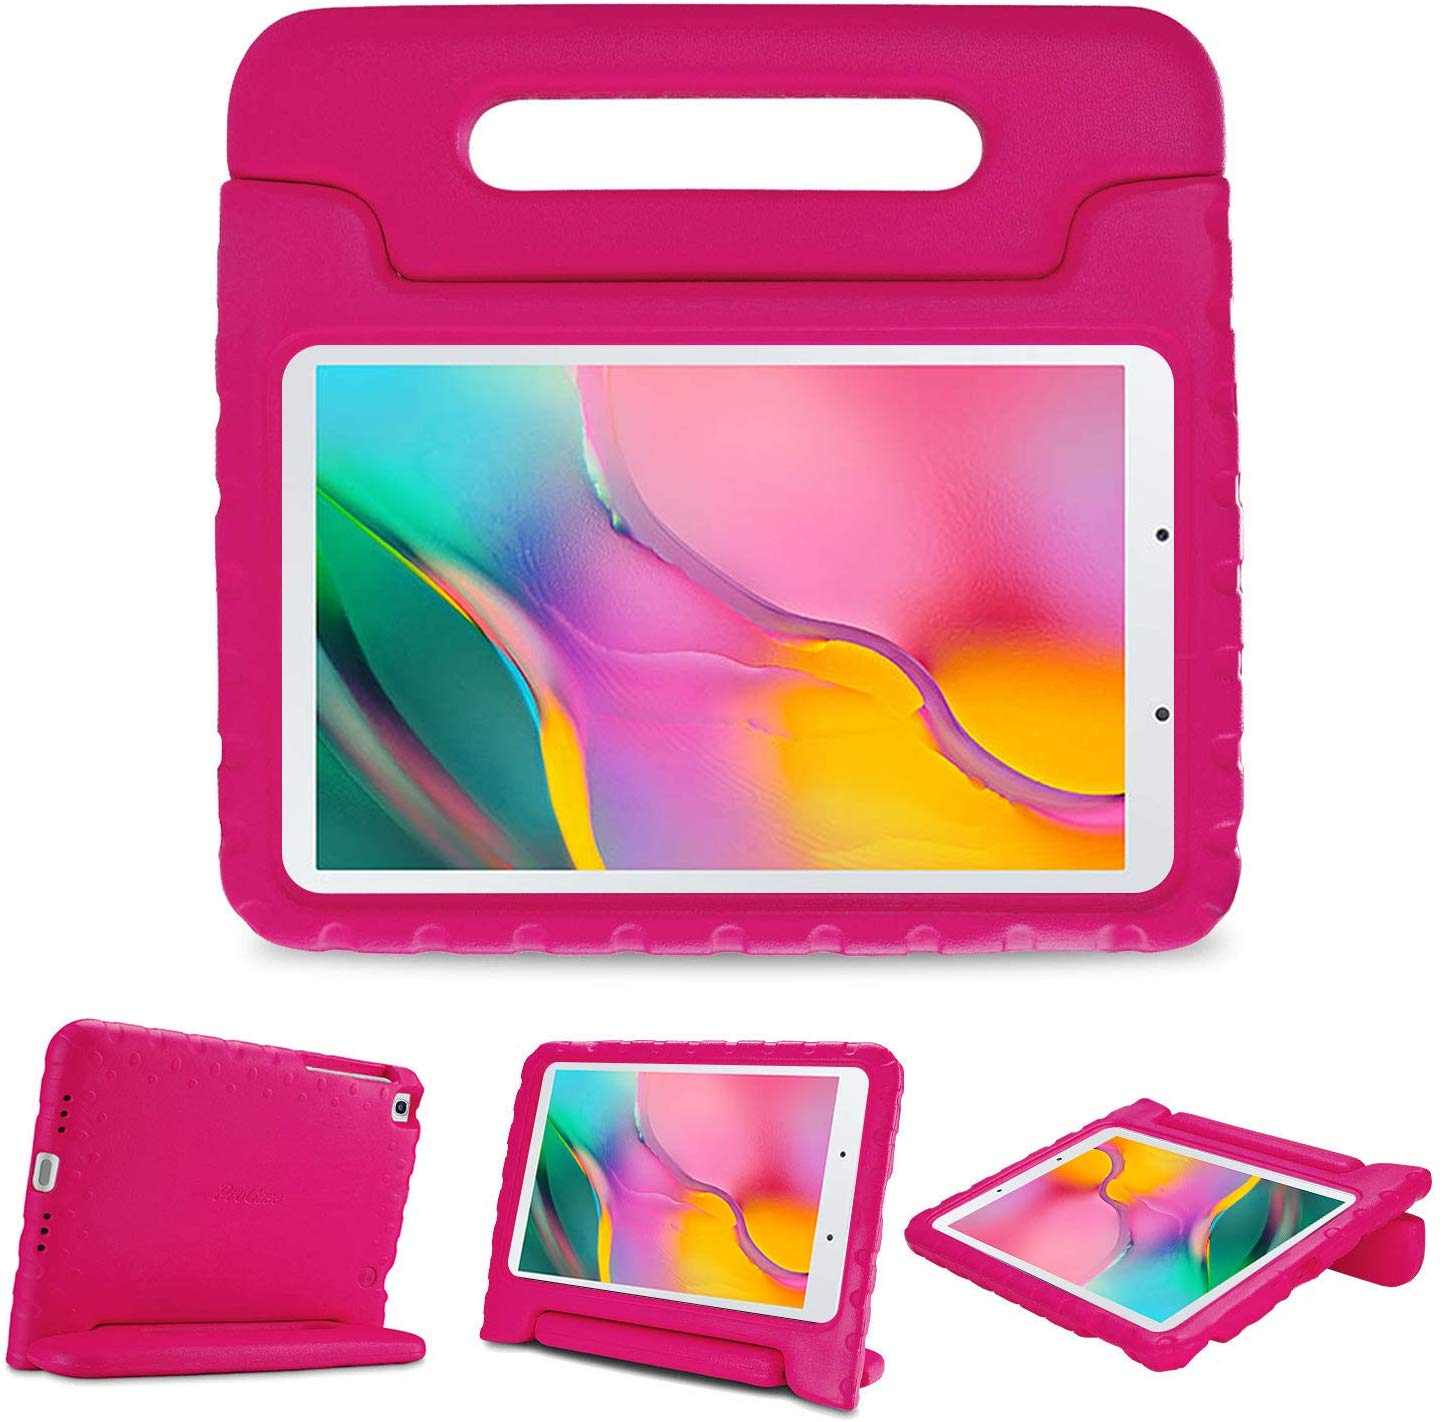 Galaxy Tab A 8.0 2019 T290 case for Kids Without S Pen | ProCase